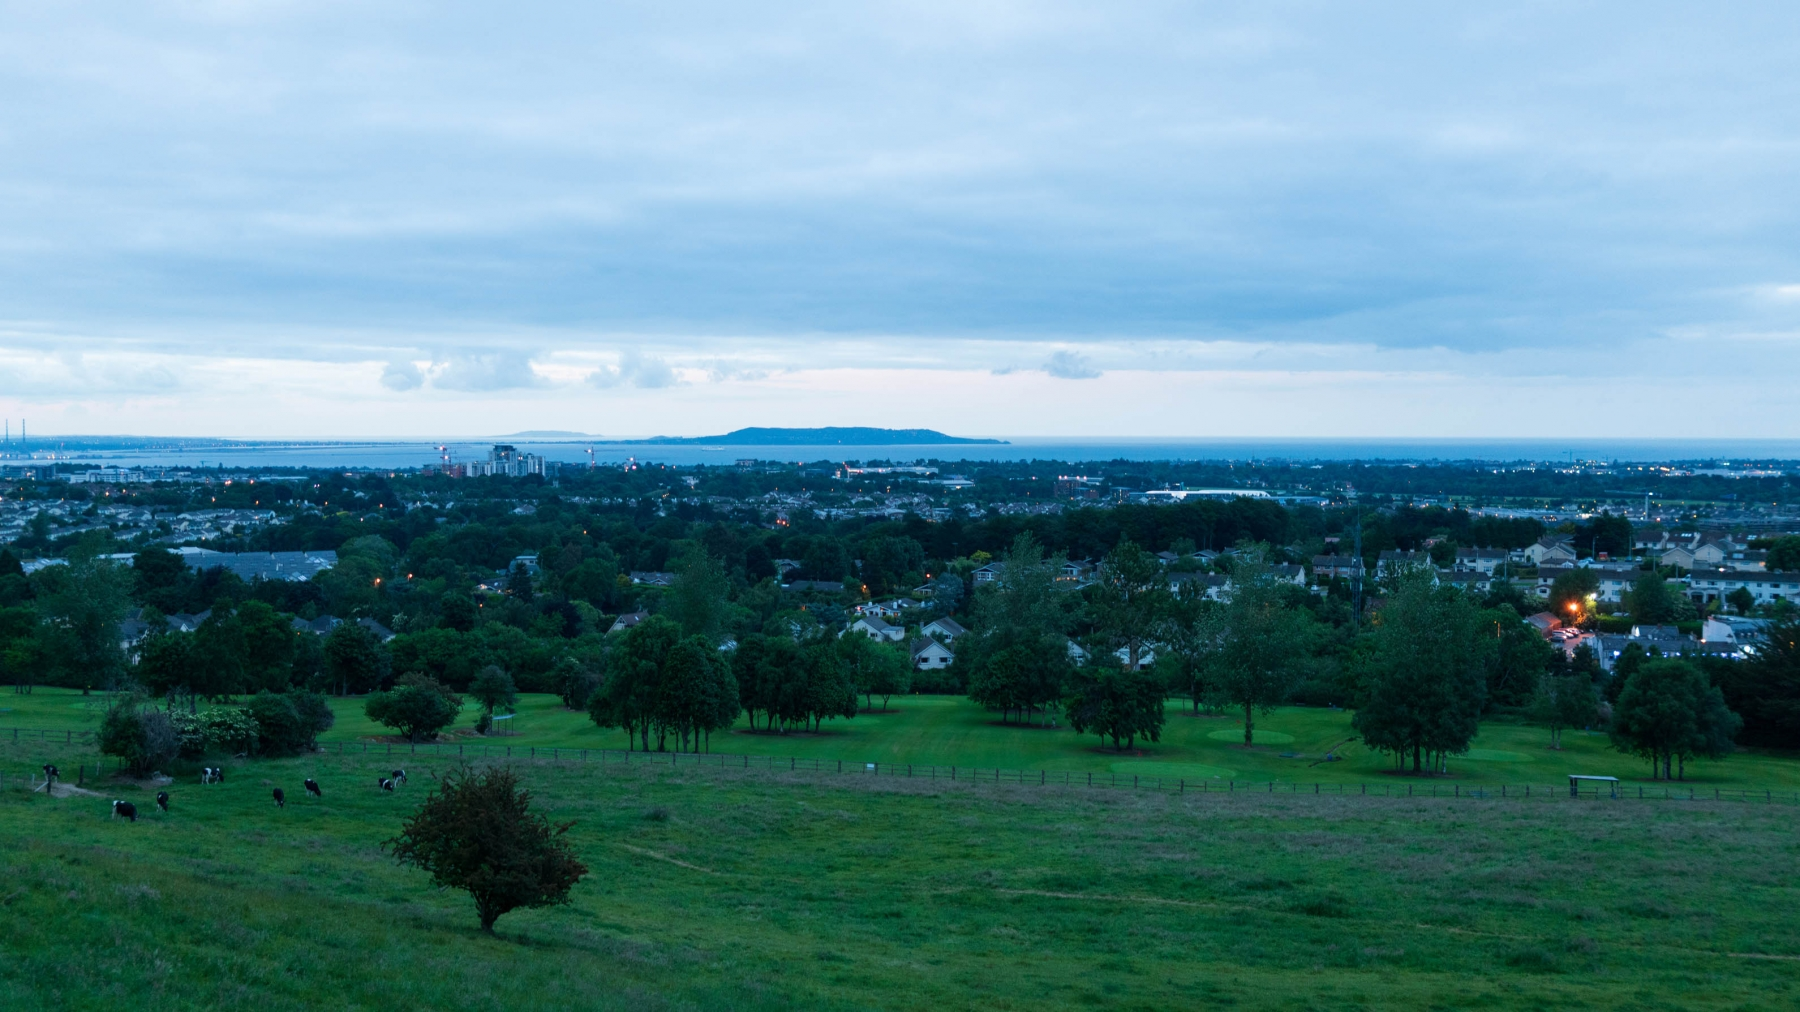 You can see Dalkey Island in the background. Took this snap from a Suburb of Dublin, about 25 mins S. Full of winding narrow roads it was dotted with some rather impressive mansions.